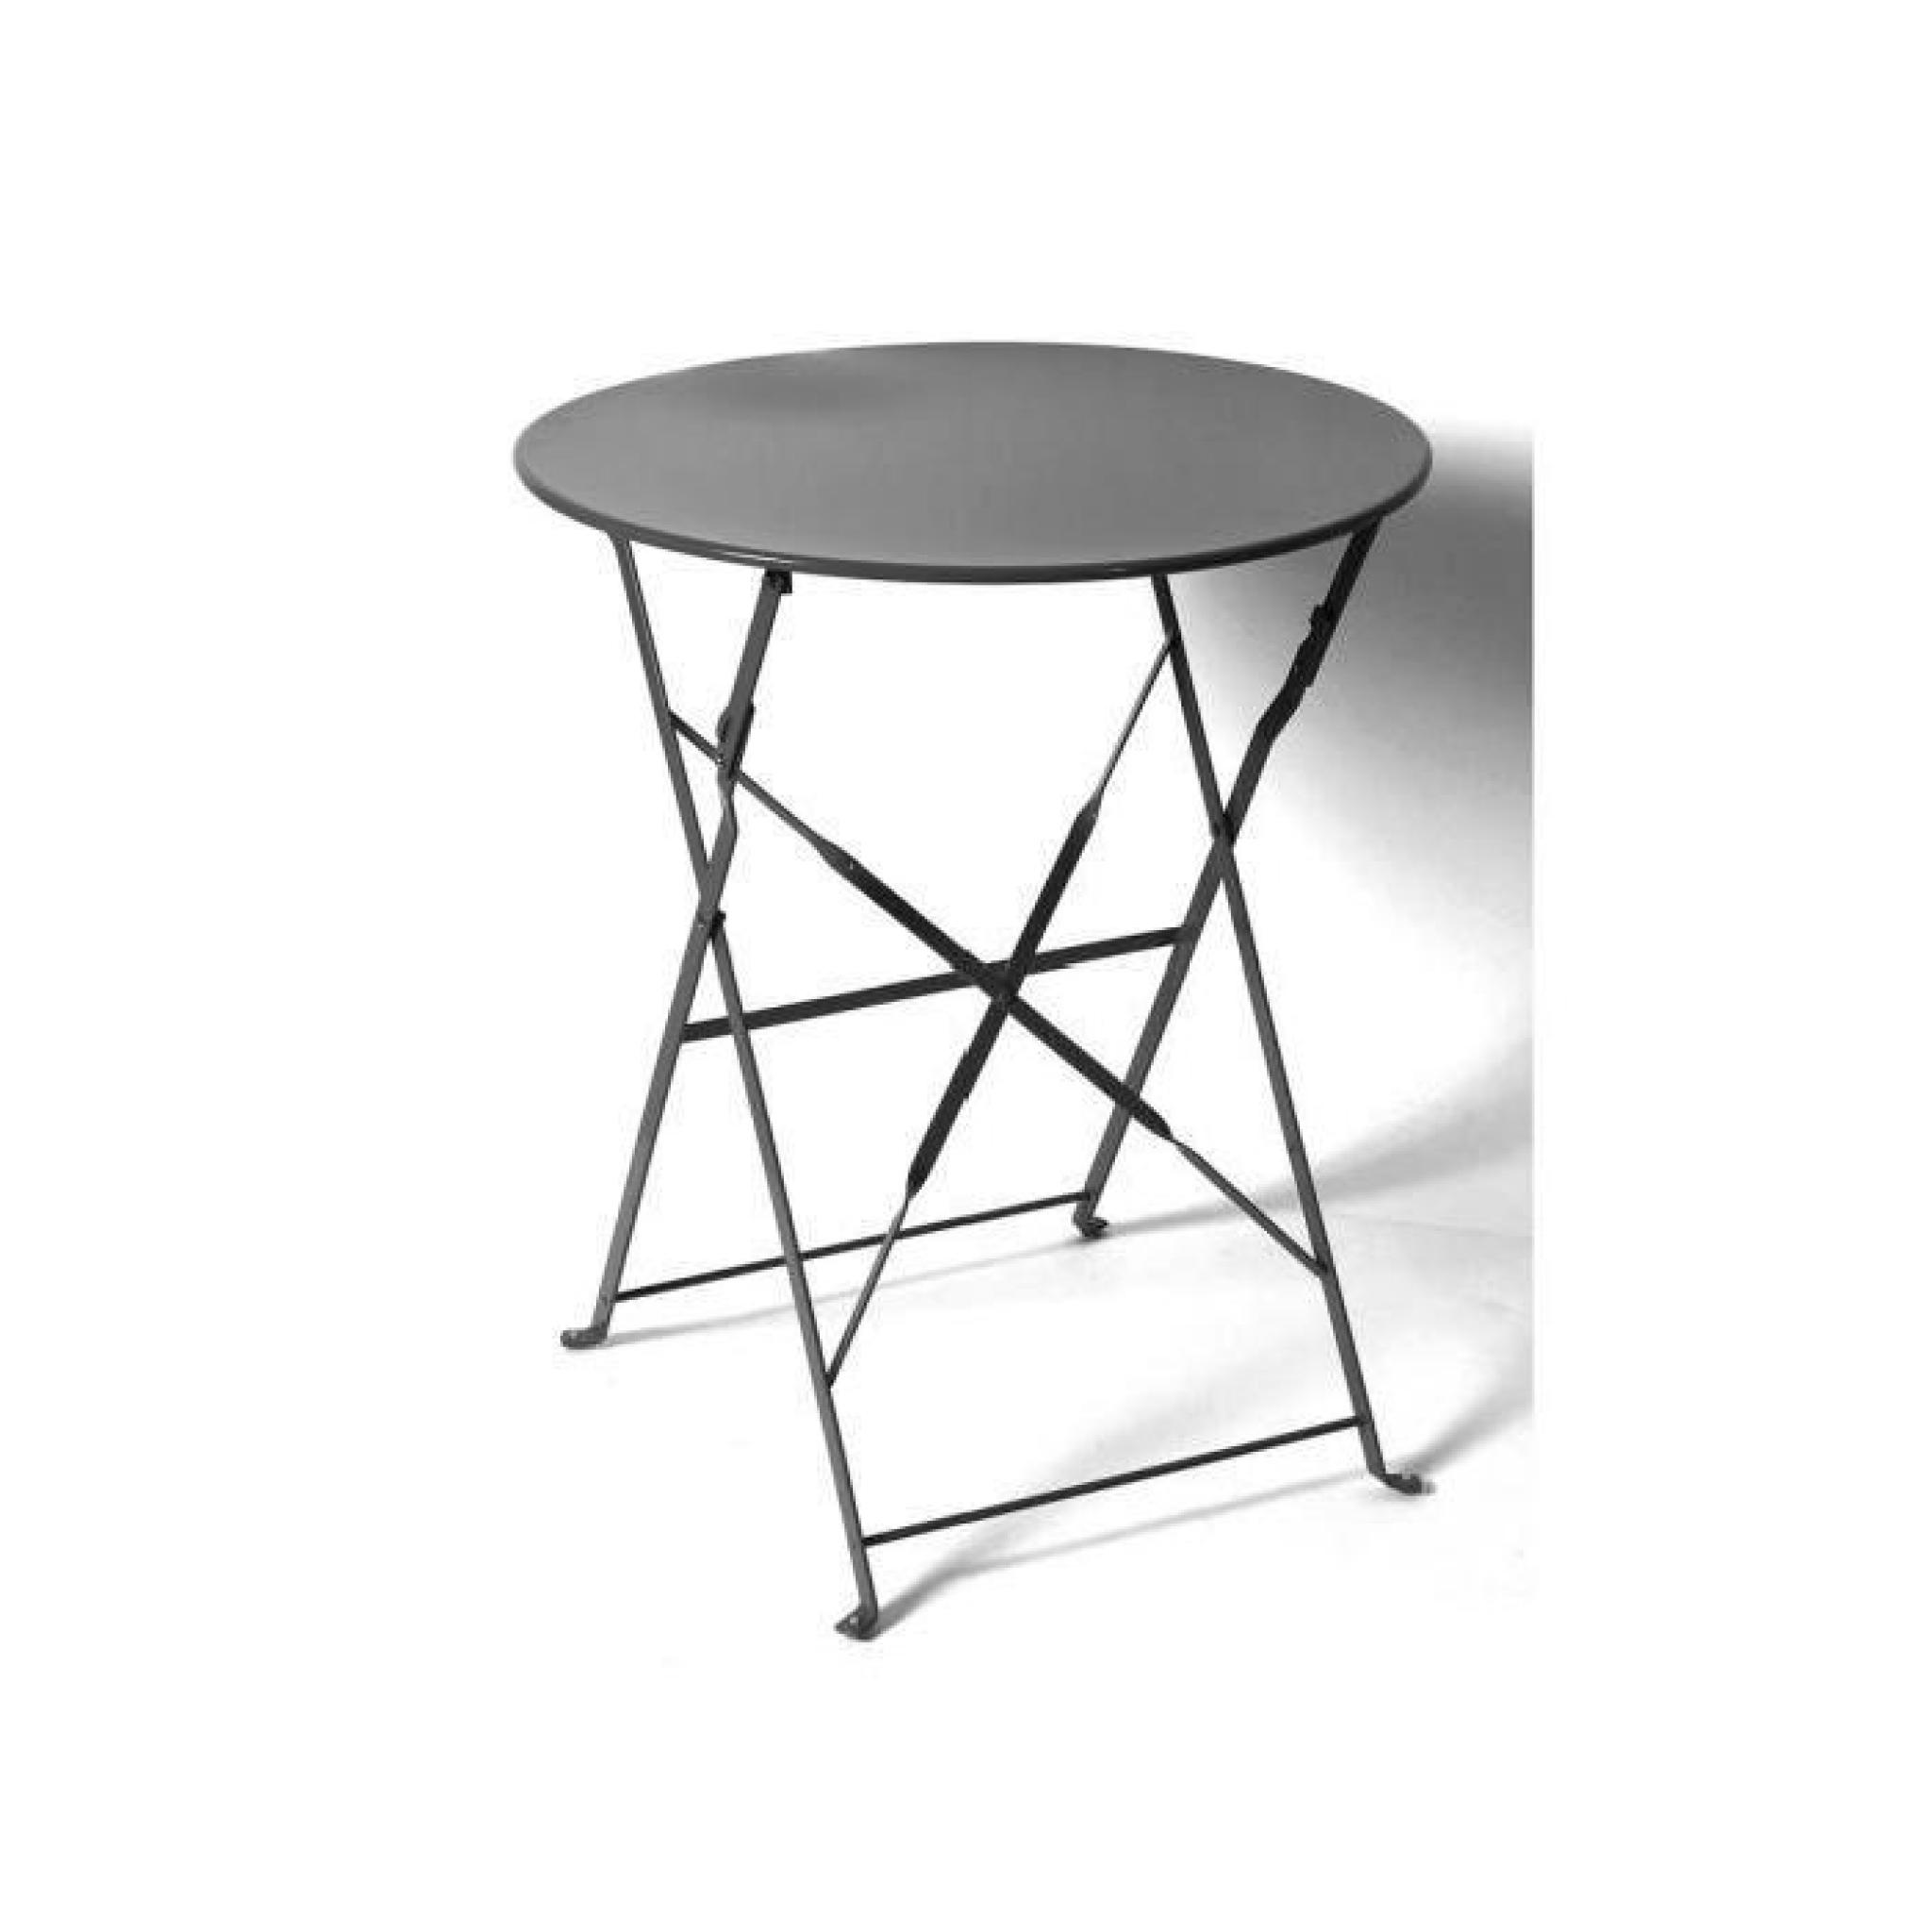 Table ronde camargue pliante 60 cm noire hesp ride - Table ronde pliante pas cher ...